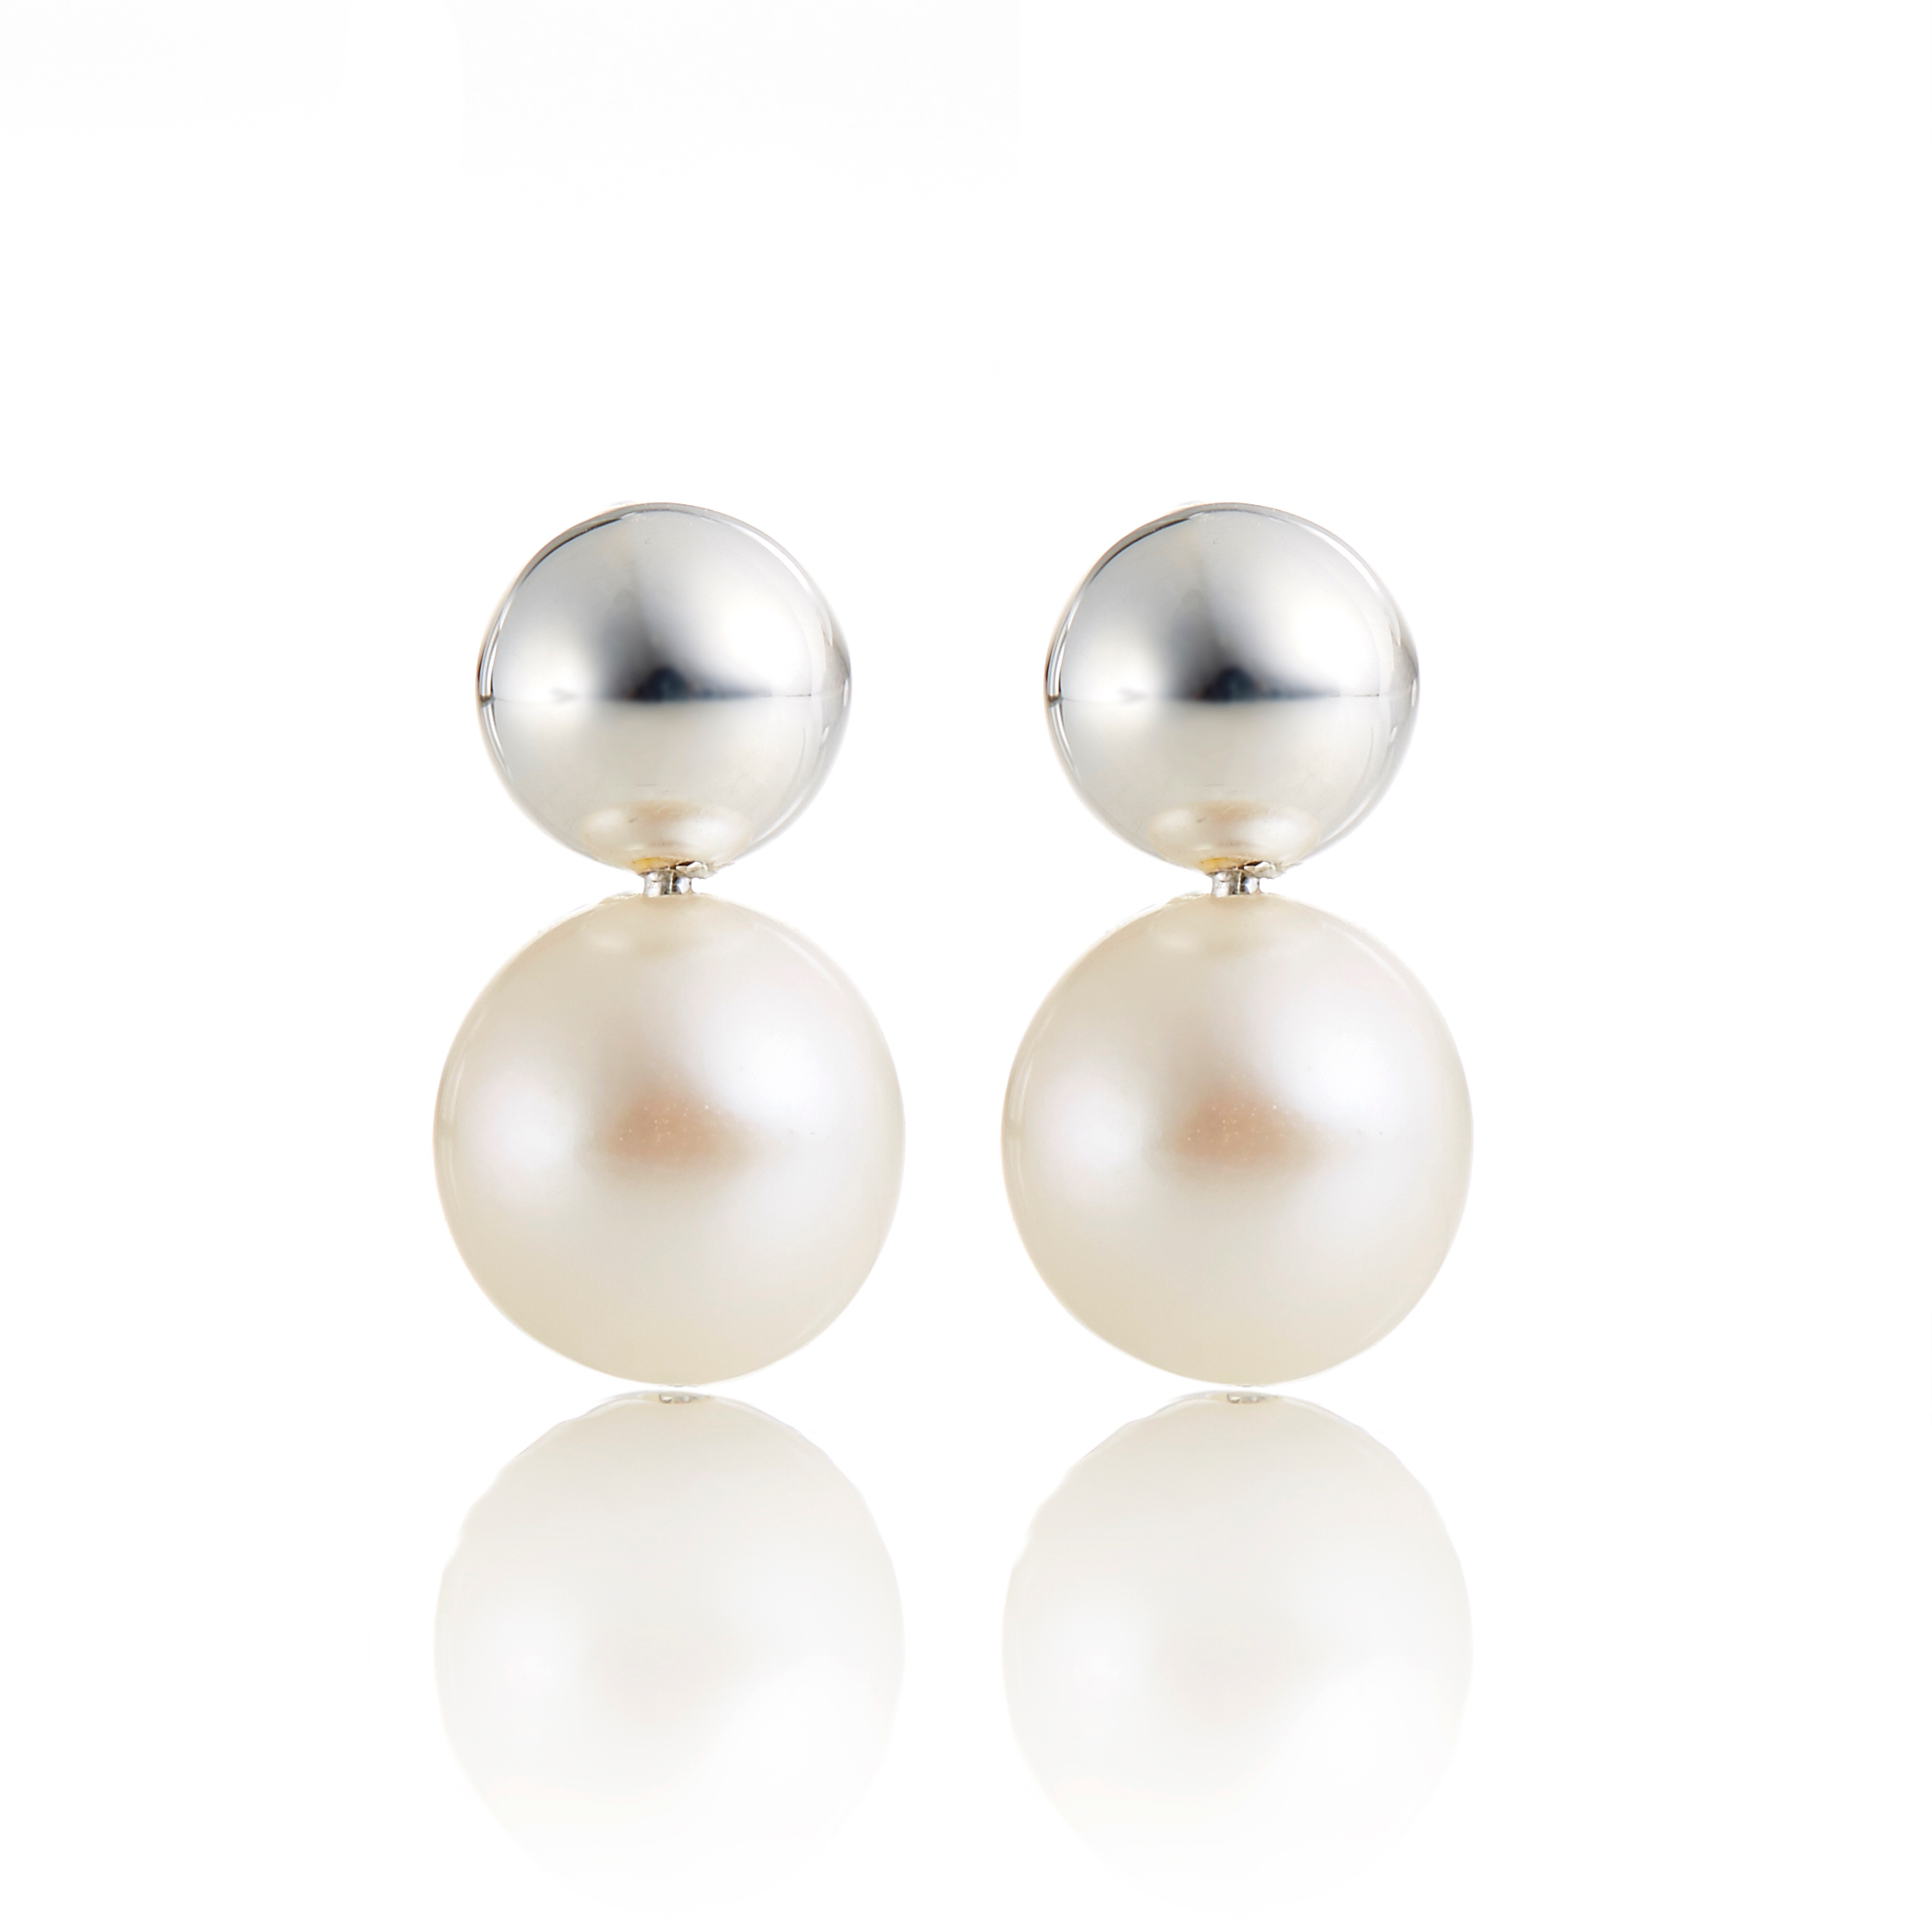 Georg Jensen Sterling Silver & White Pearl Moonlight Grapes Earrings